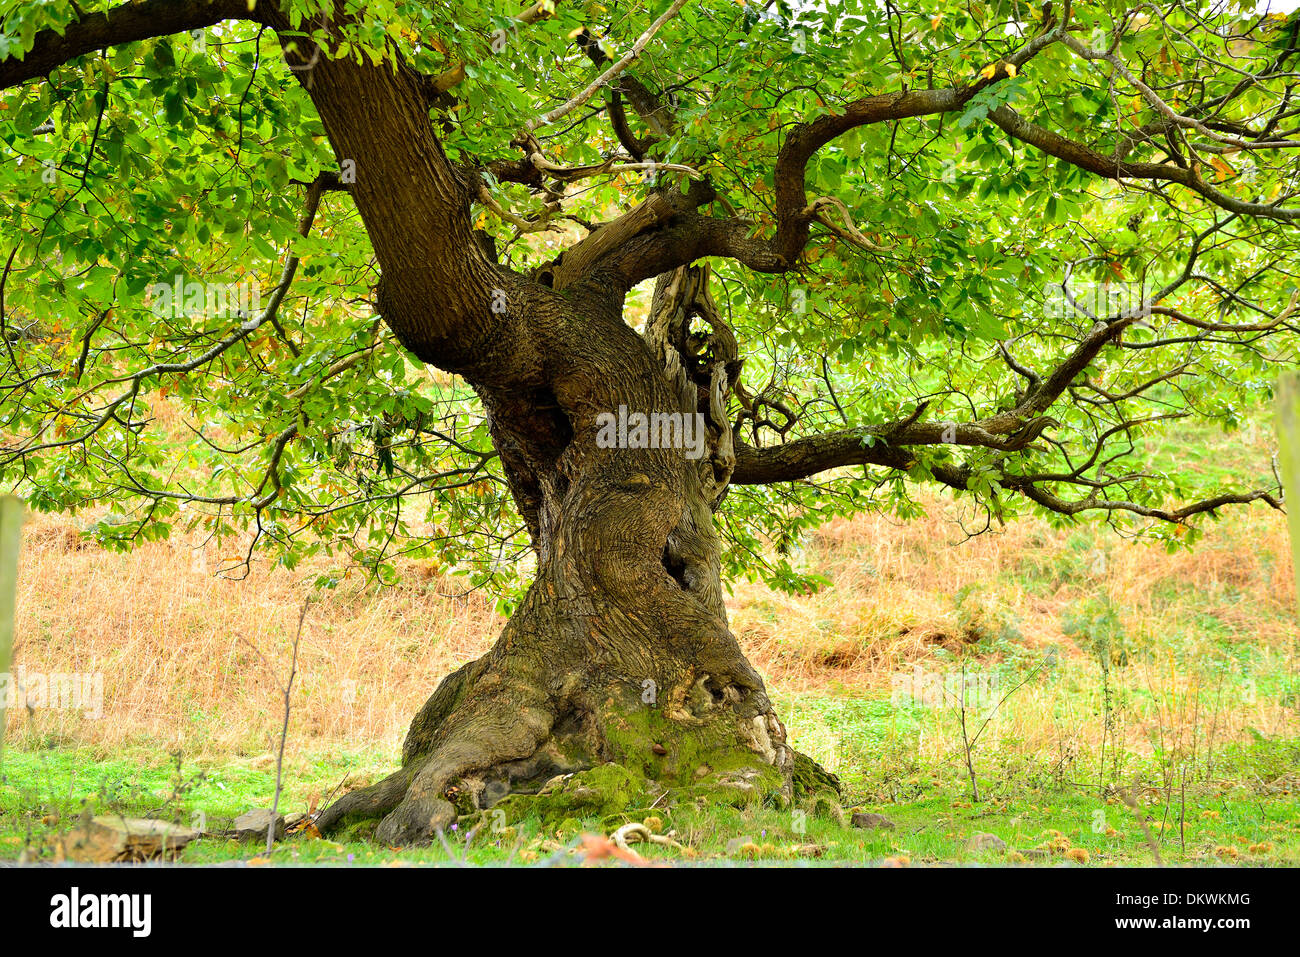 Big Chestnut tree Stock Photo Royalty Free Image 63873840 Alamy